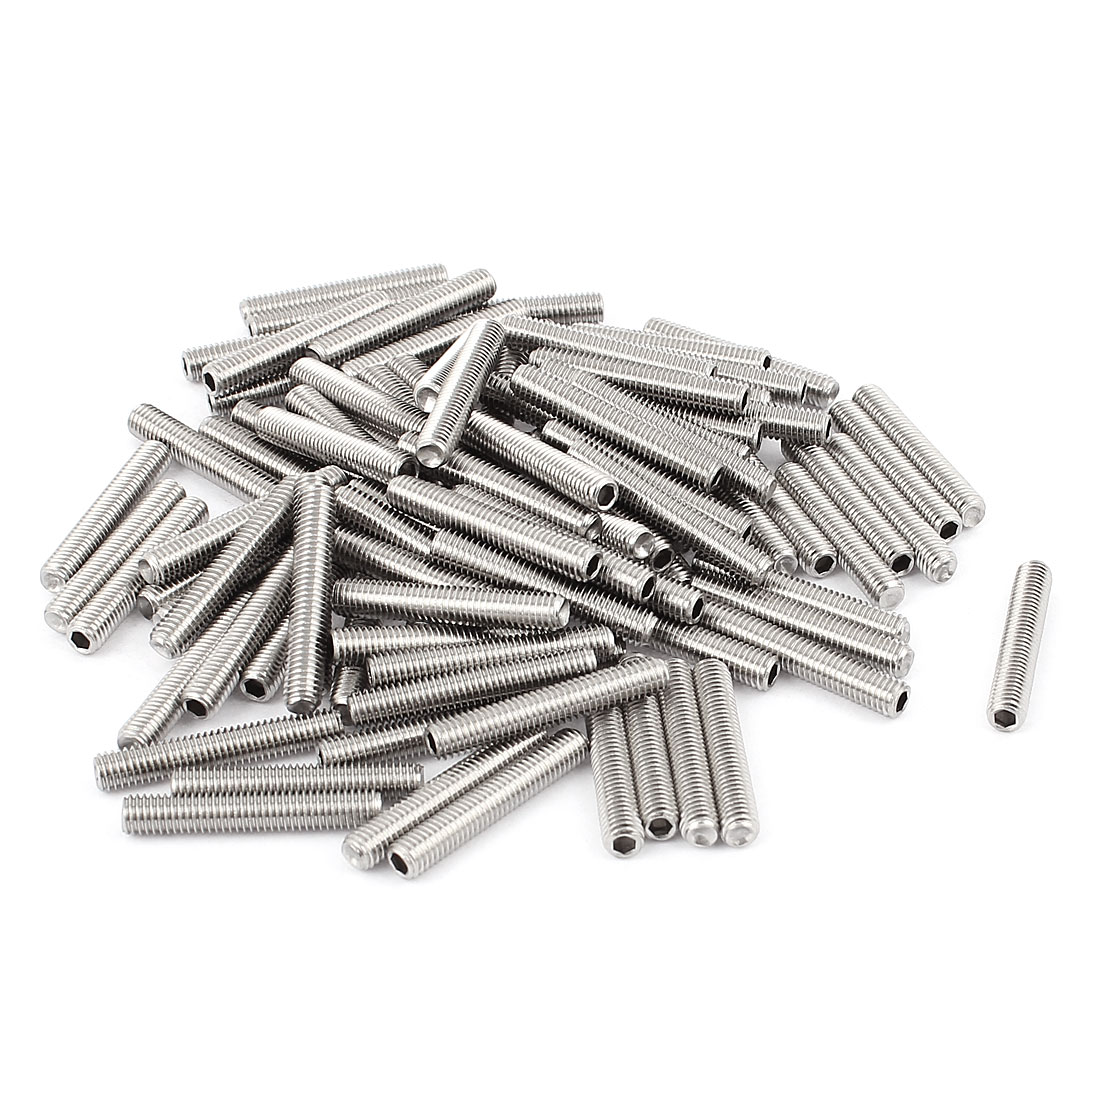 M5x30mm Stainless Steel Hex Socket Set Cup Point Grub Screws Silver Tone 100Pcs